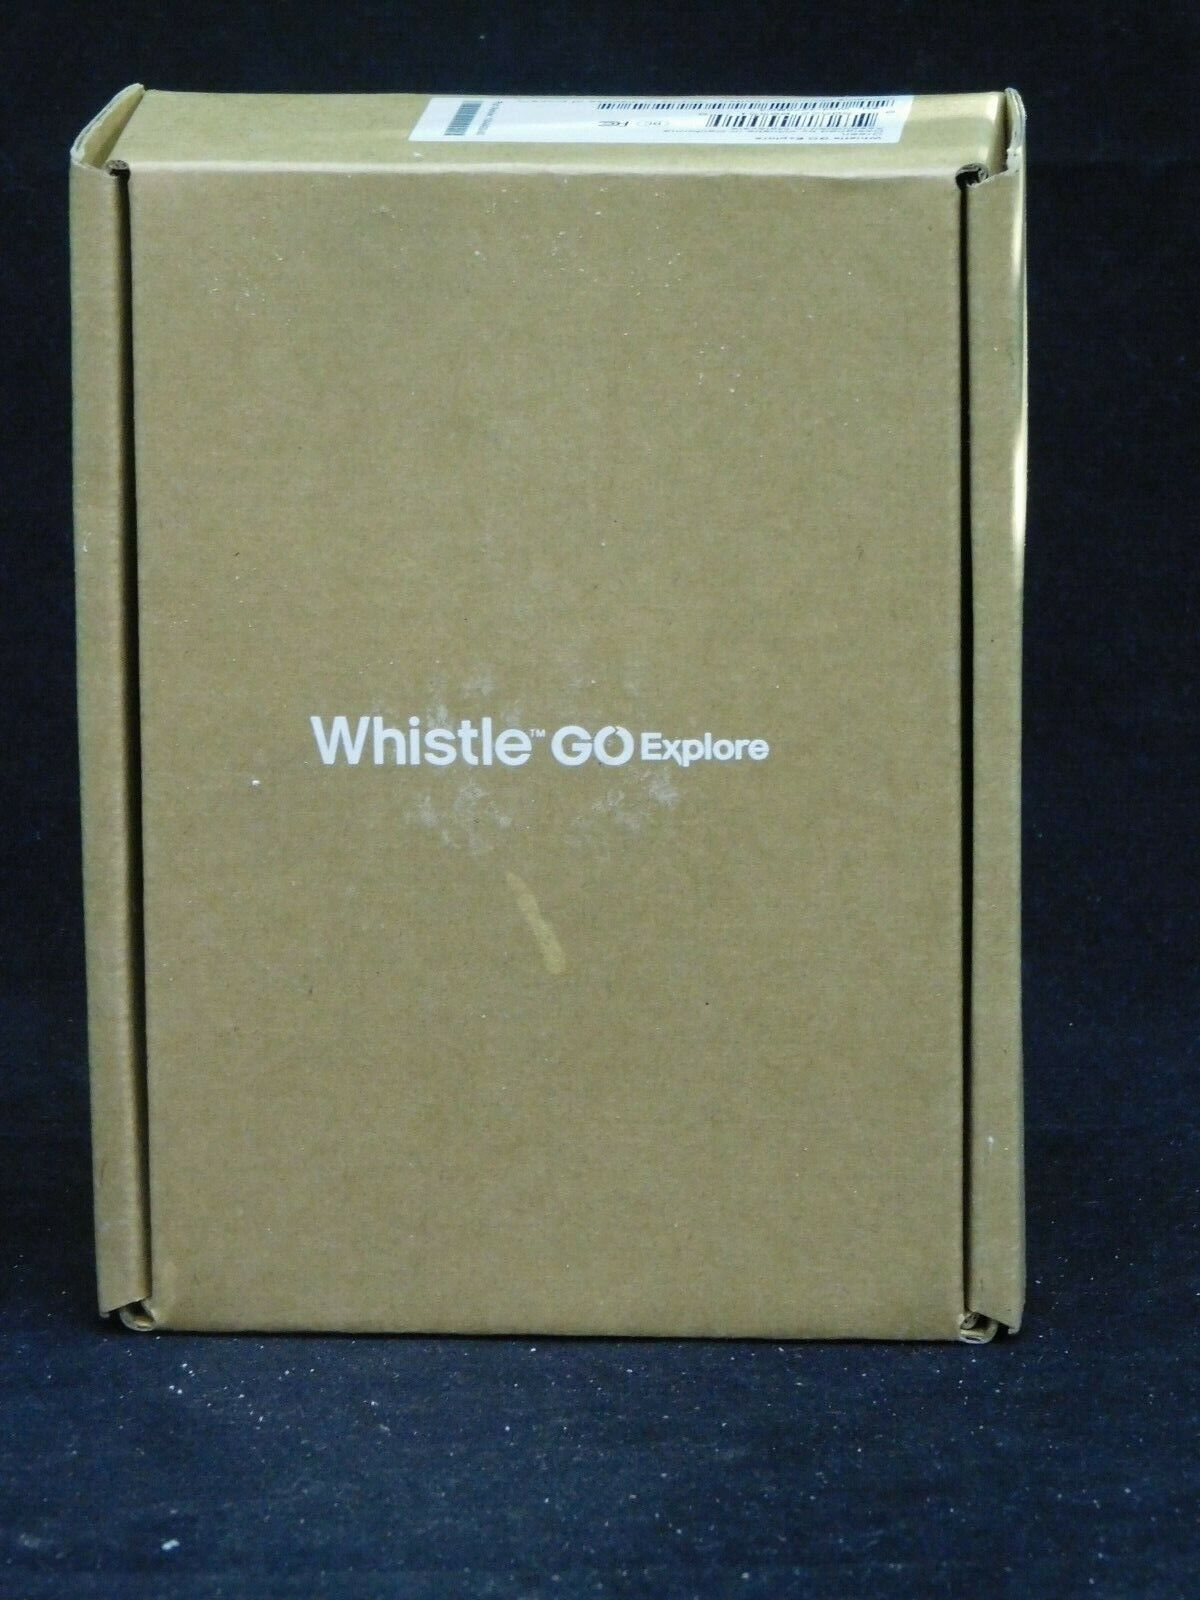 Whistle Go - Green - Sealed Box - Part No 100-04202-00 - $118.99